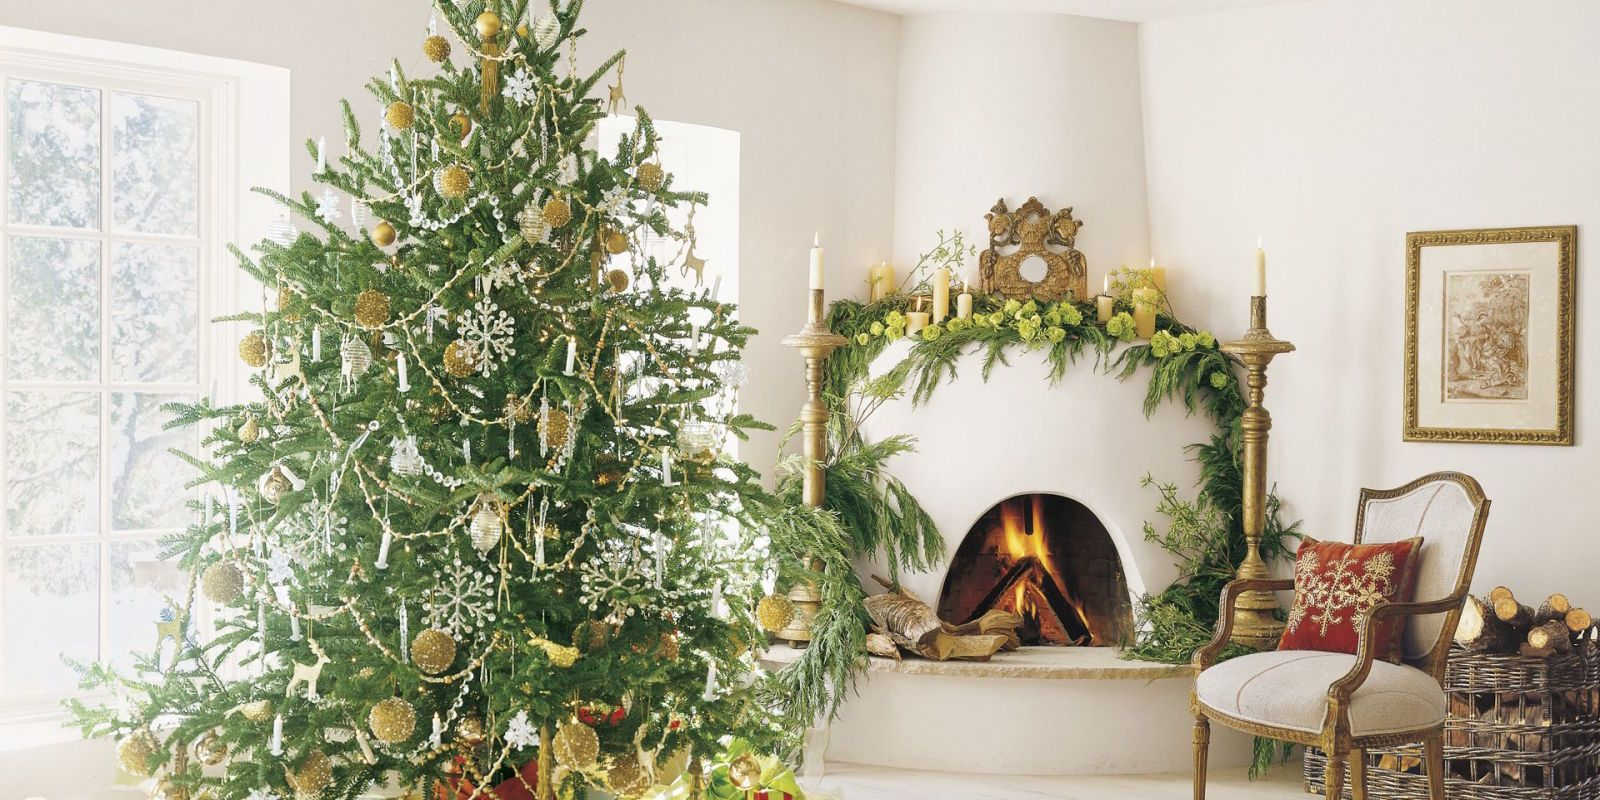 50+ Best Christmas Decorating Ideas For The 2017 Season   Ultimate Guide To Holiday  Decorating